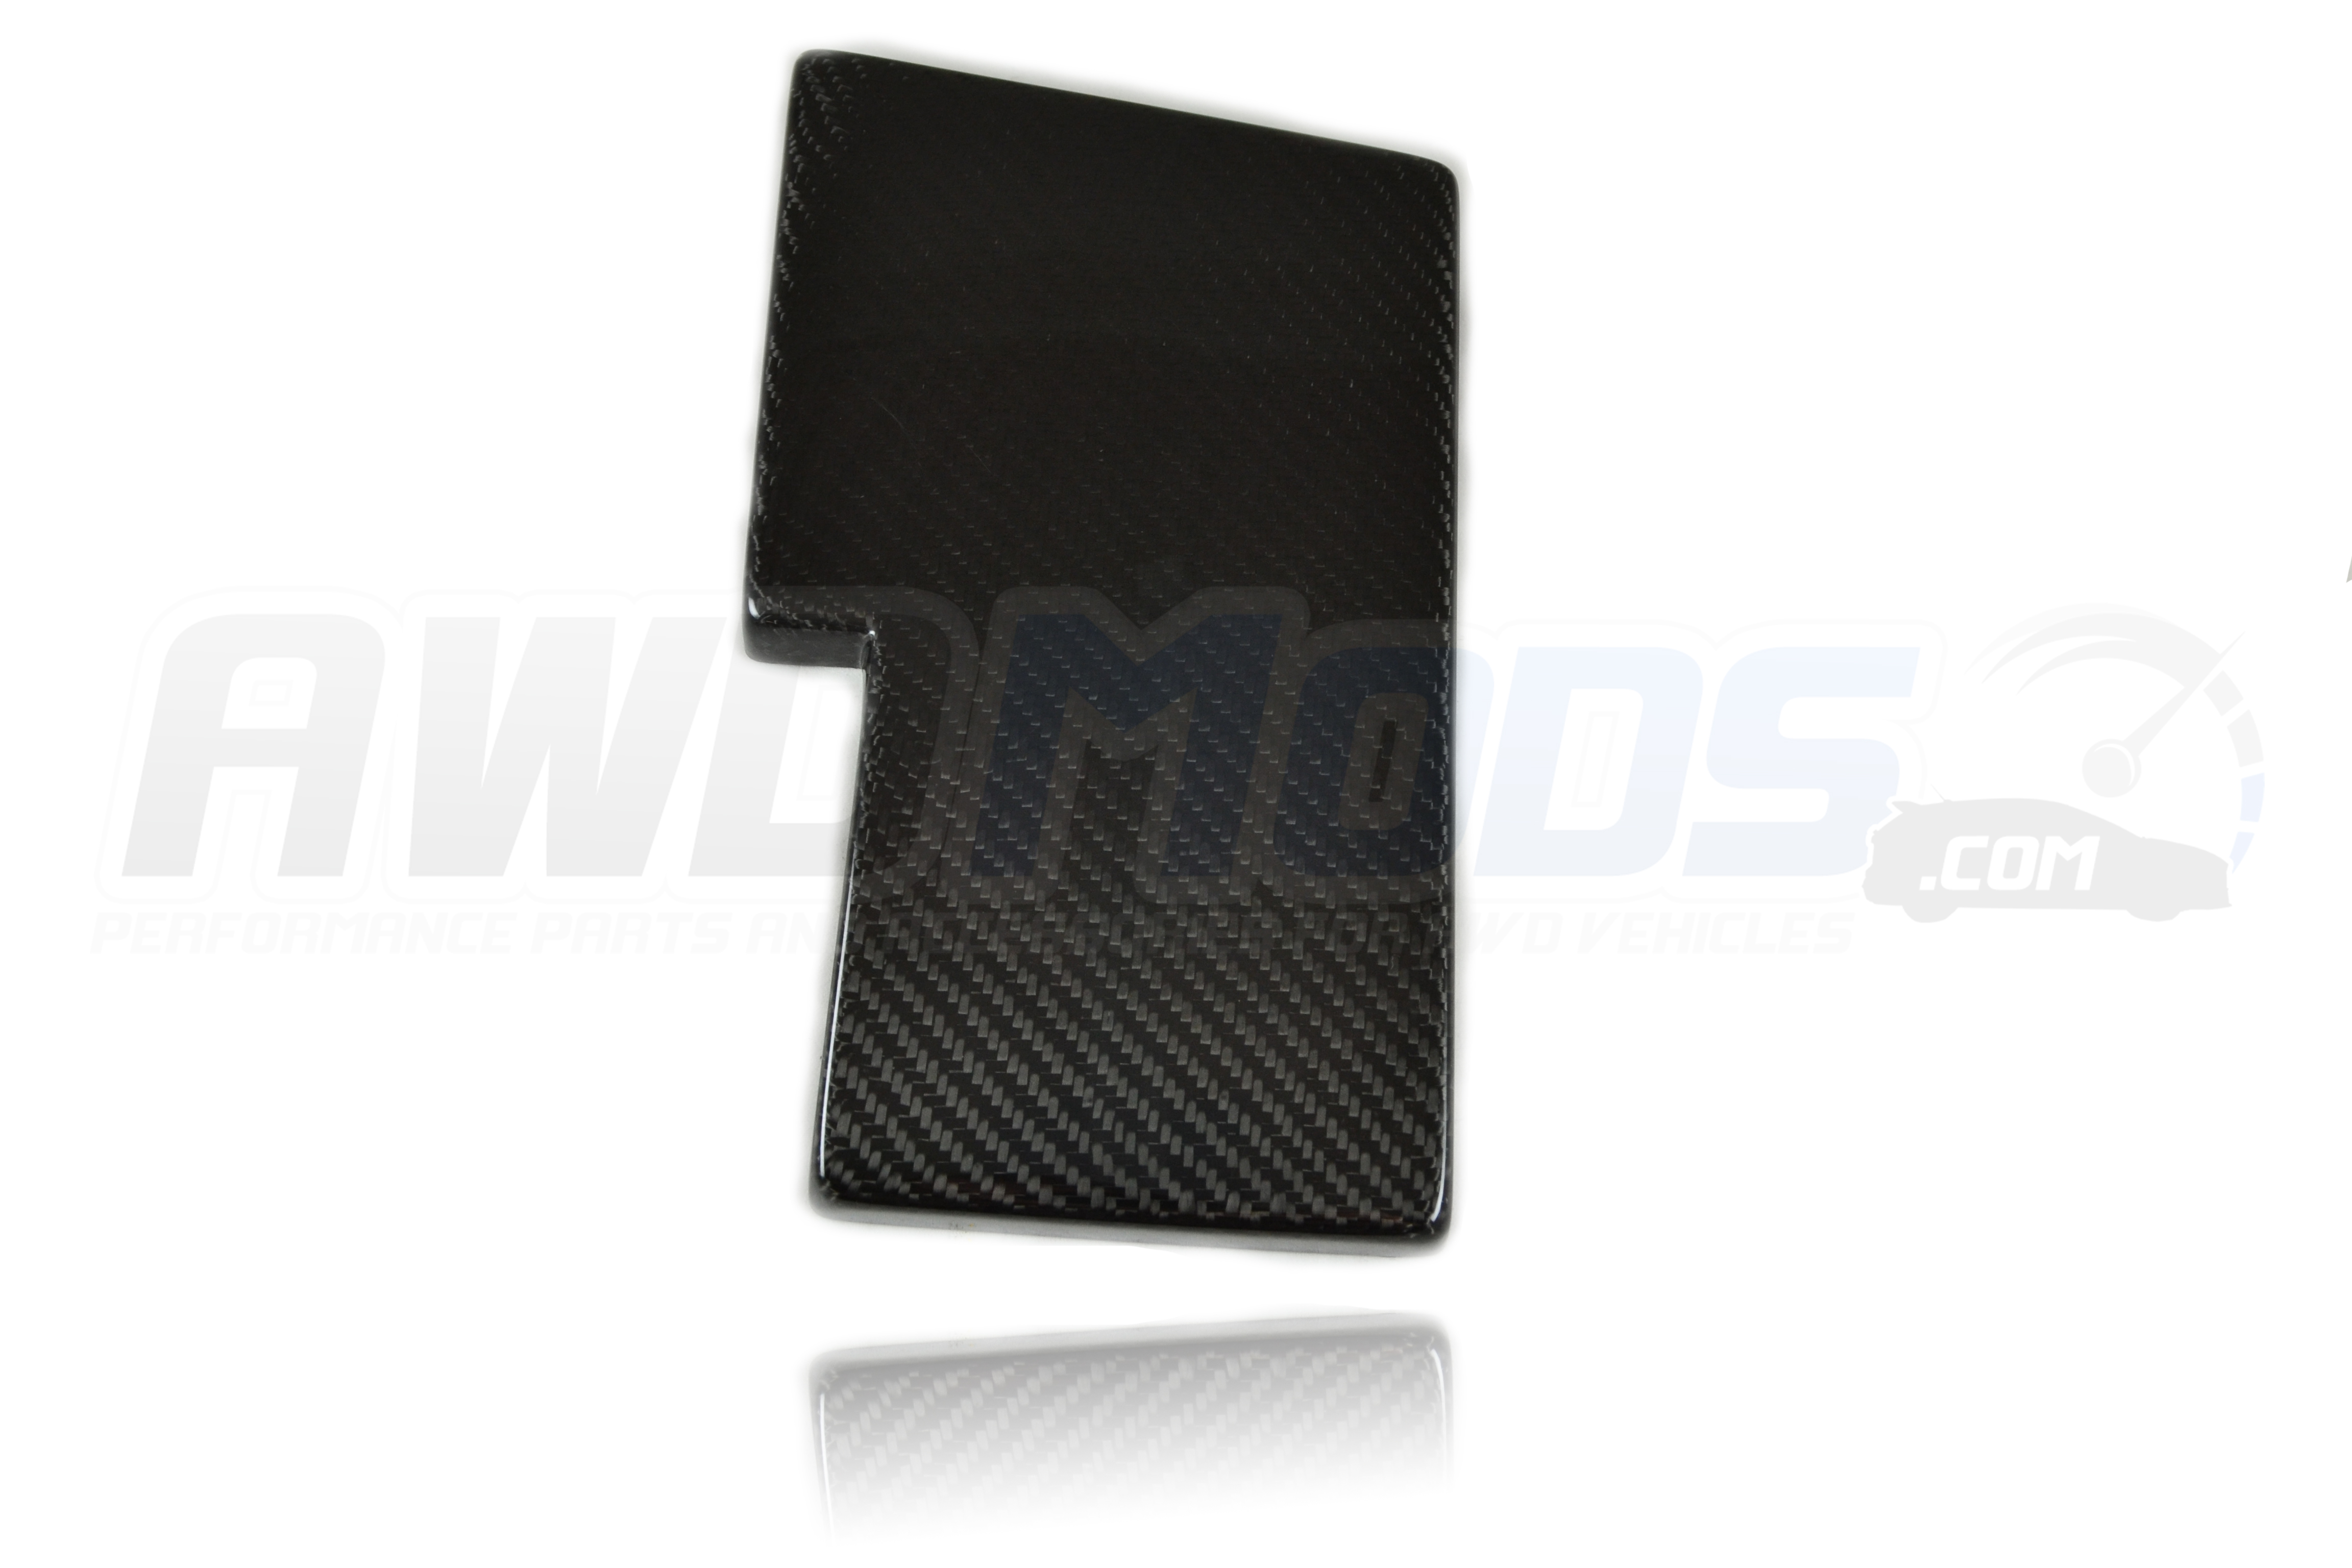 ford focus rs st carbon fiber fuse box cover from cal pony cars 2001 Lincoln Town Car Fuse Box Diagram cal pony cars carbon fiber fuse box cover for the ford focus rs st